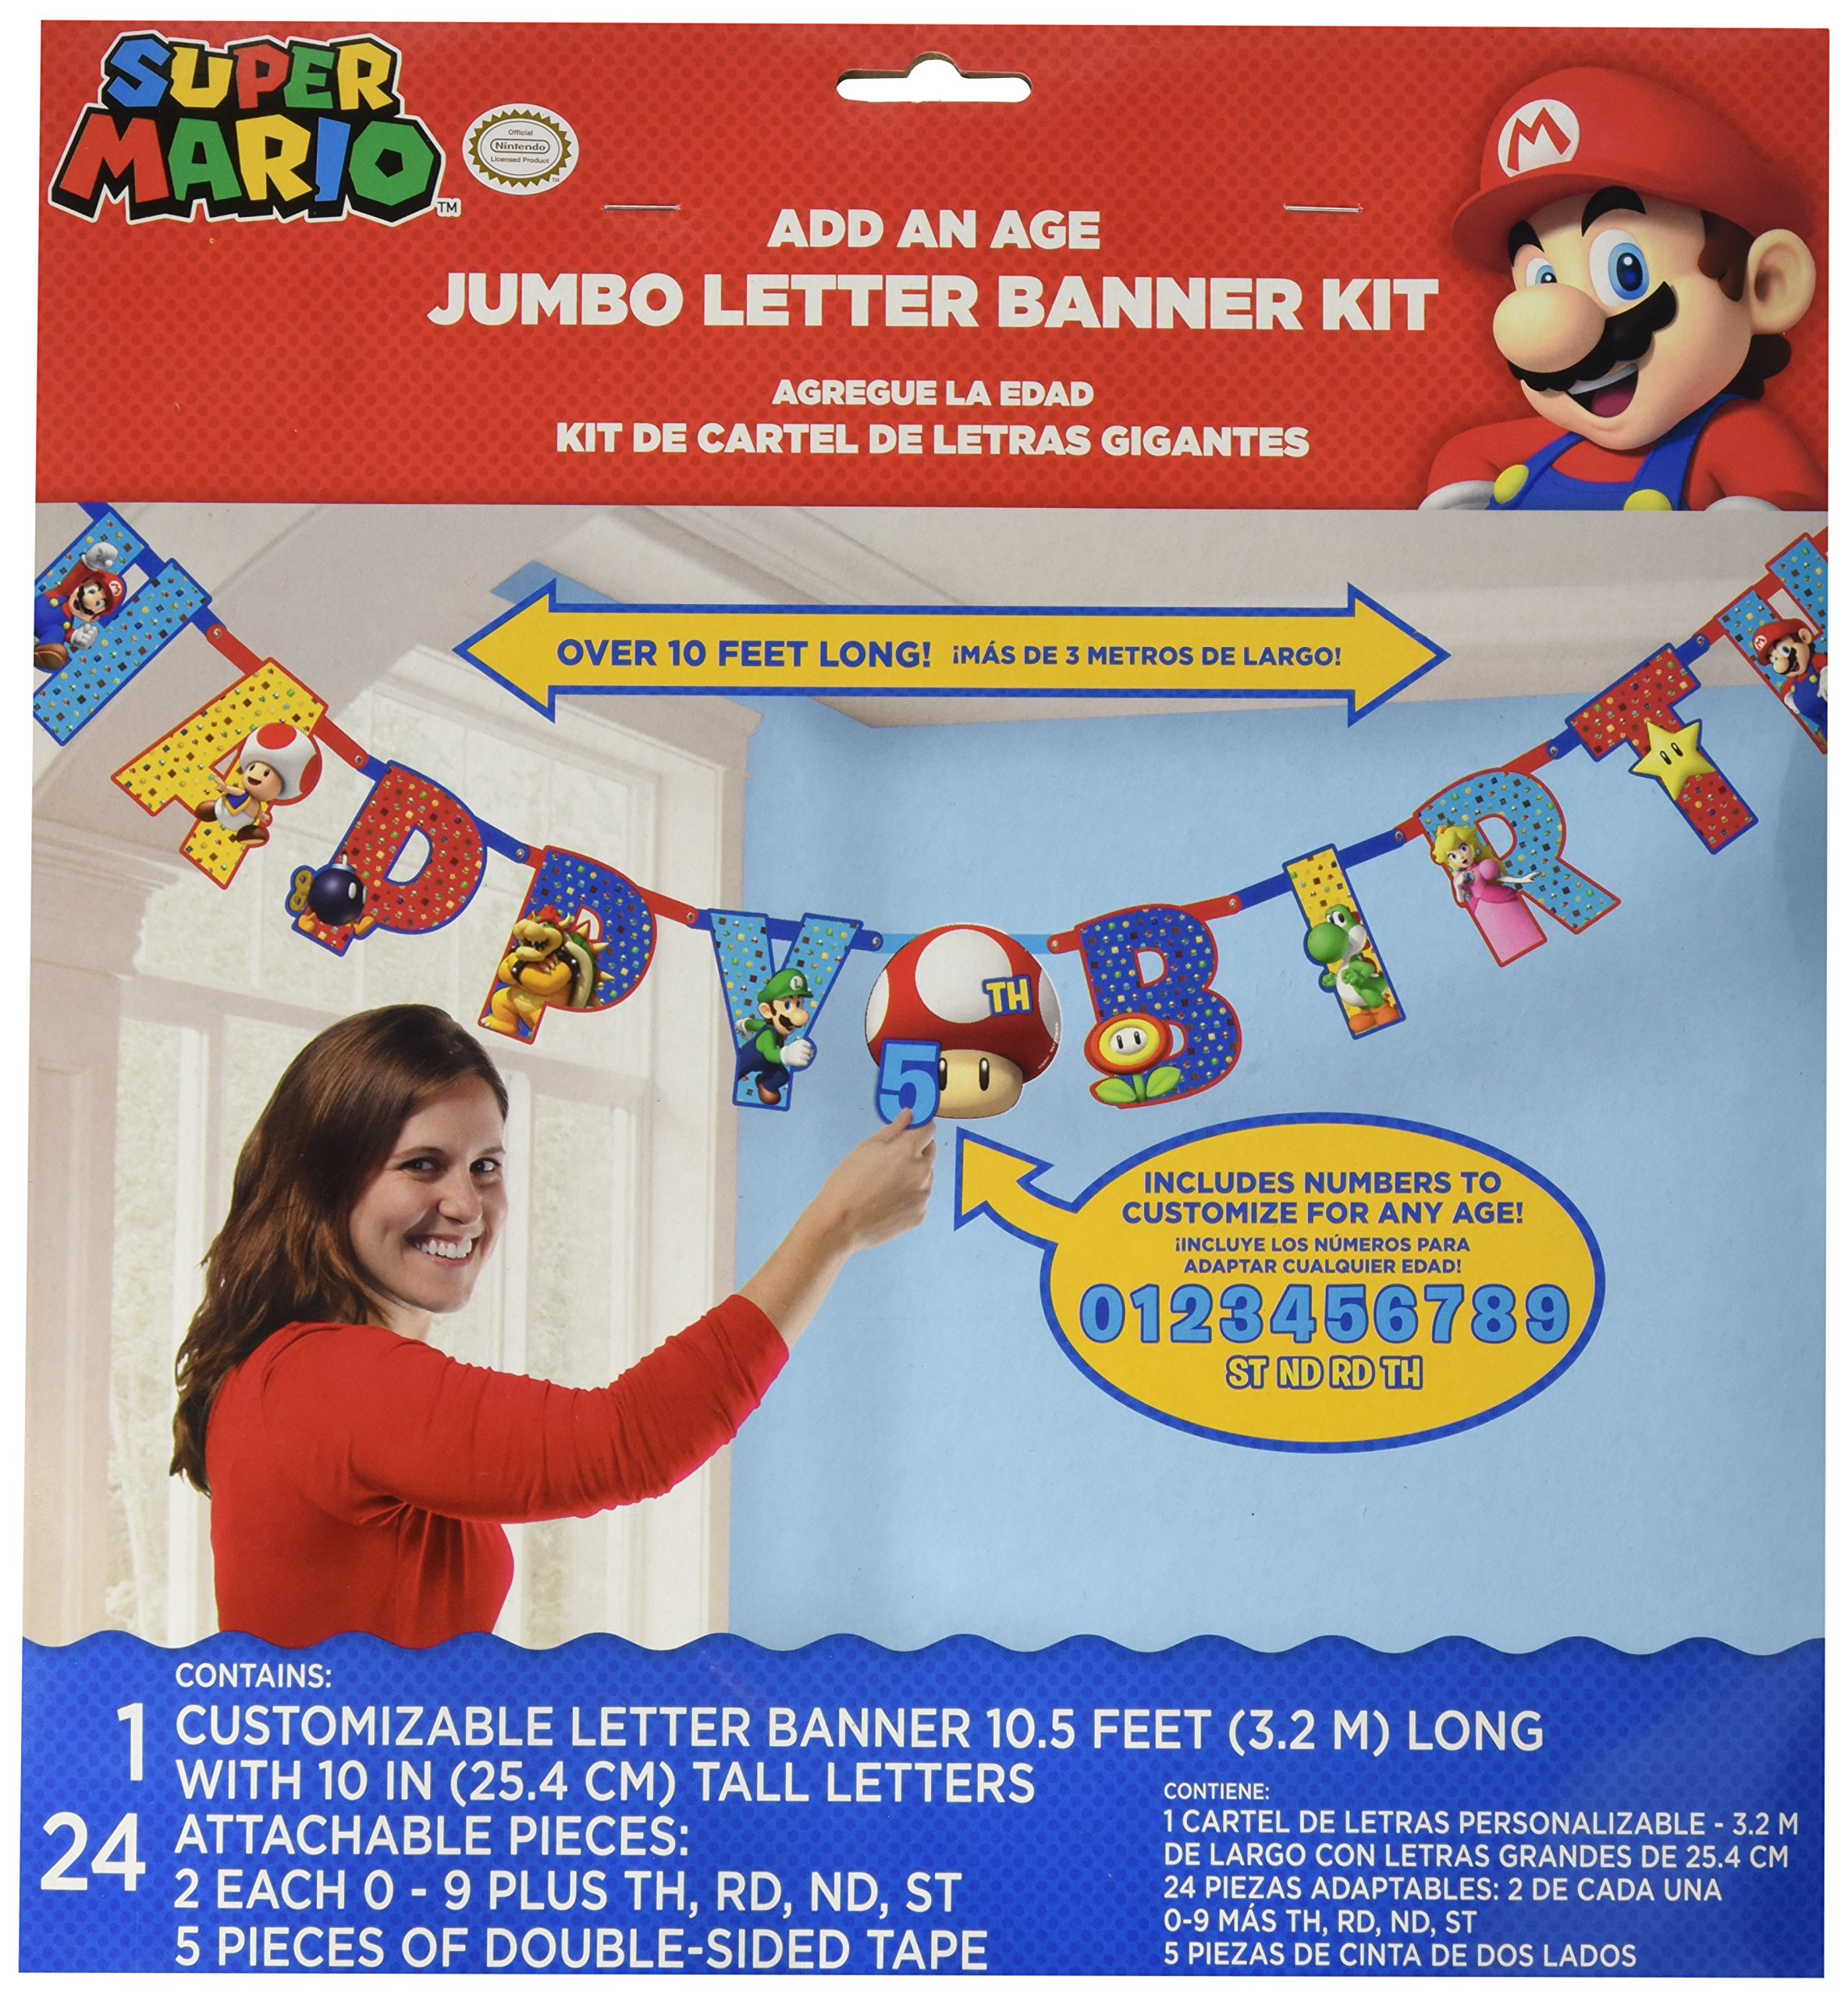 amscan Super Mario Brothers Jumbo Add-an-Age Happy Birthday Letter Banner, 6 Ct. by amscan (Image #1)